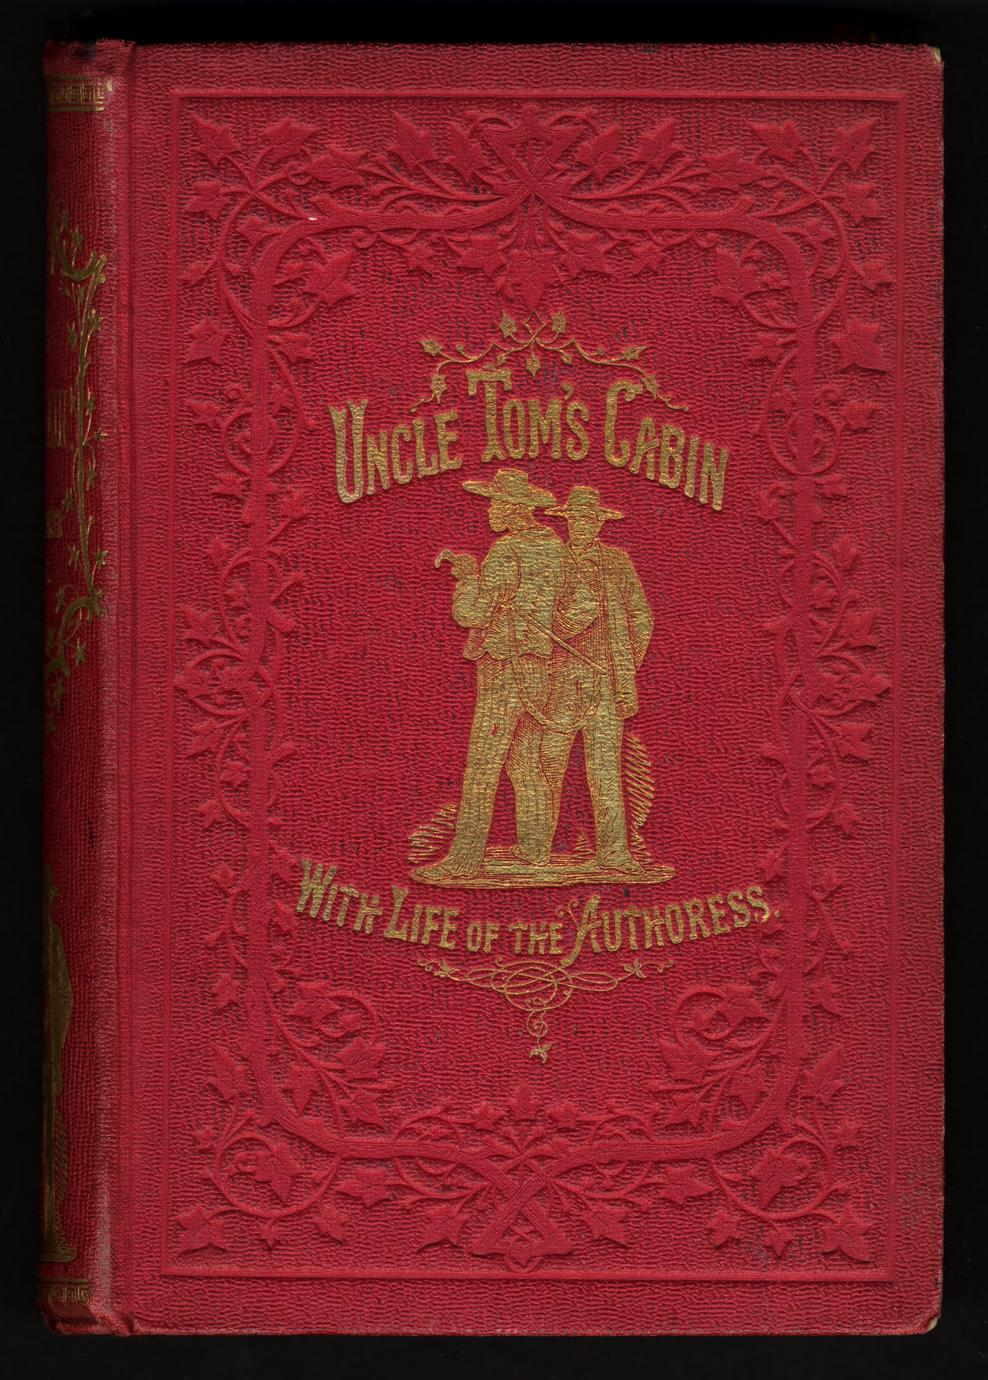 Uncle Tom's cabin; or Slave life in America (1 of 3)